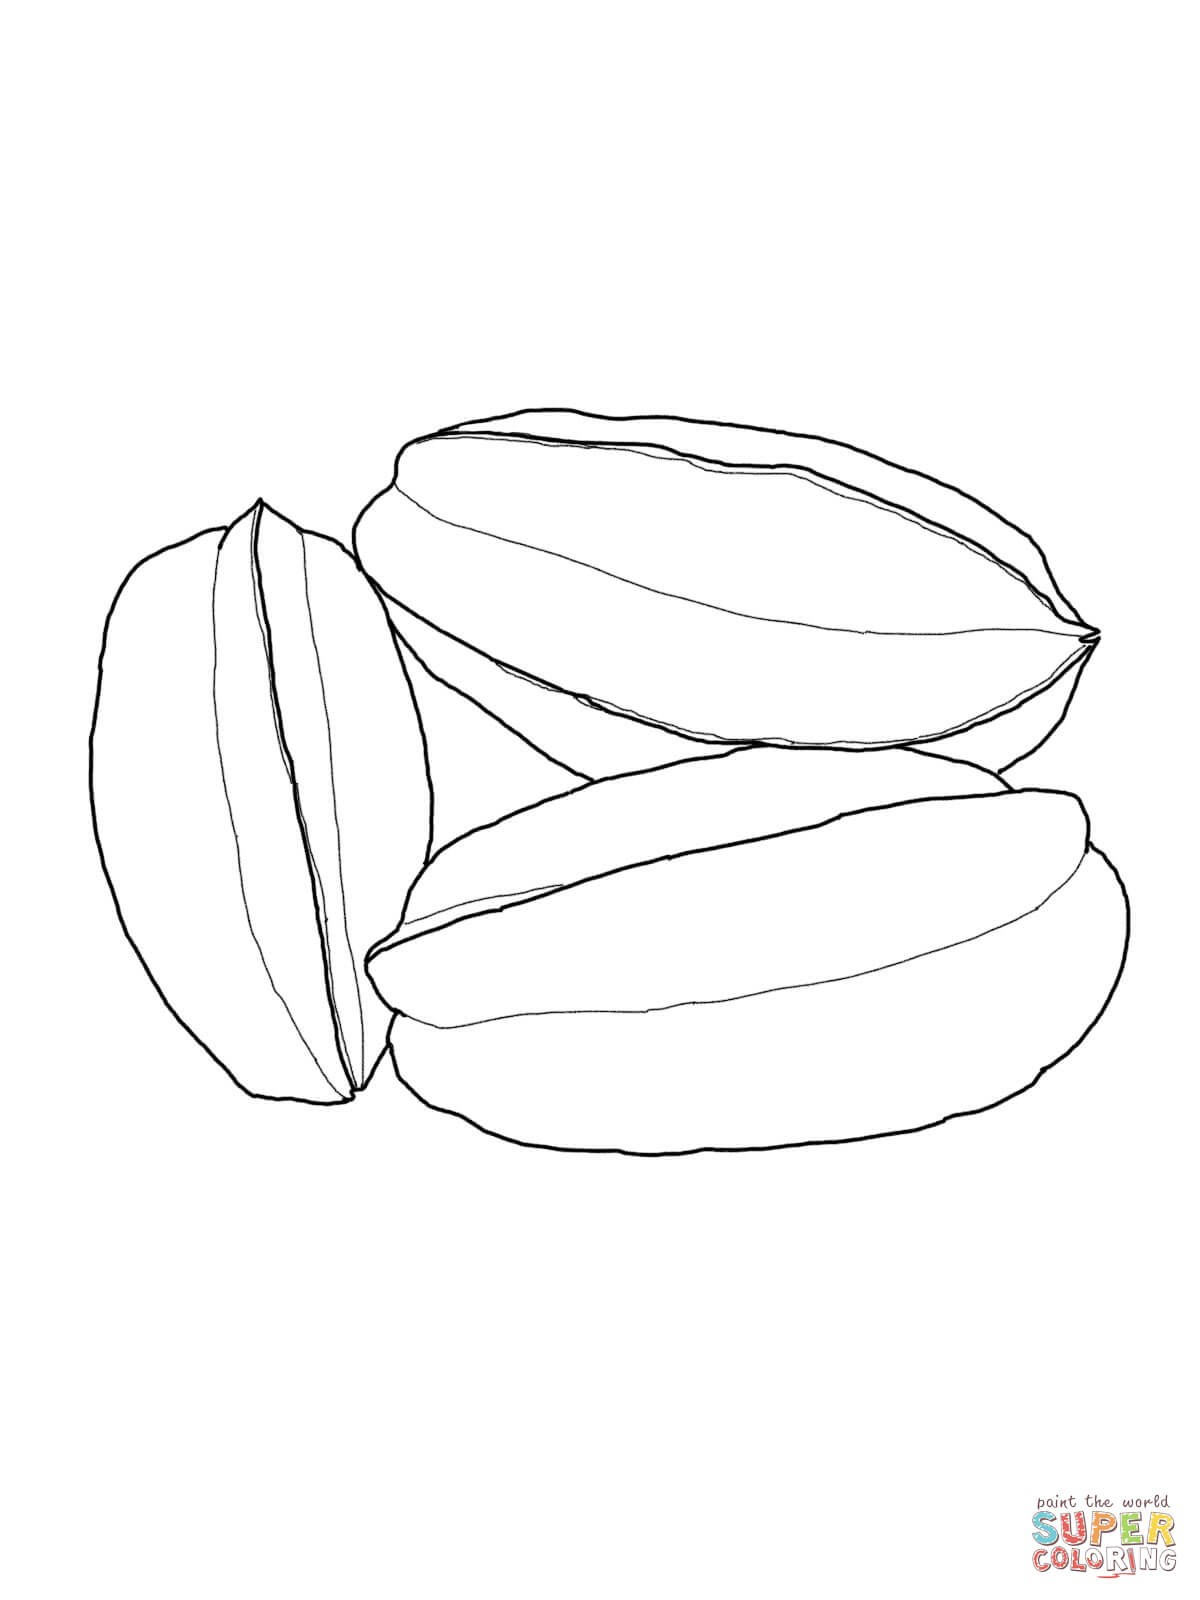 1200x1600 Carambola Fruits Coloring Pages For Kids Beautiful Star Fruit